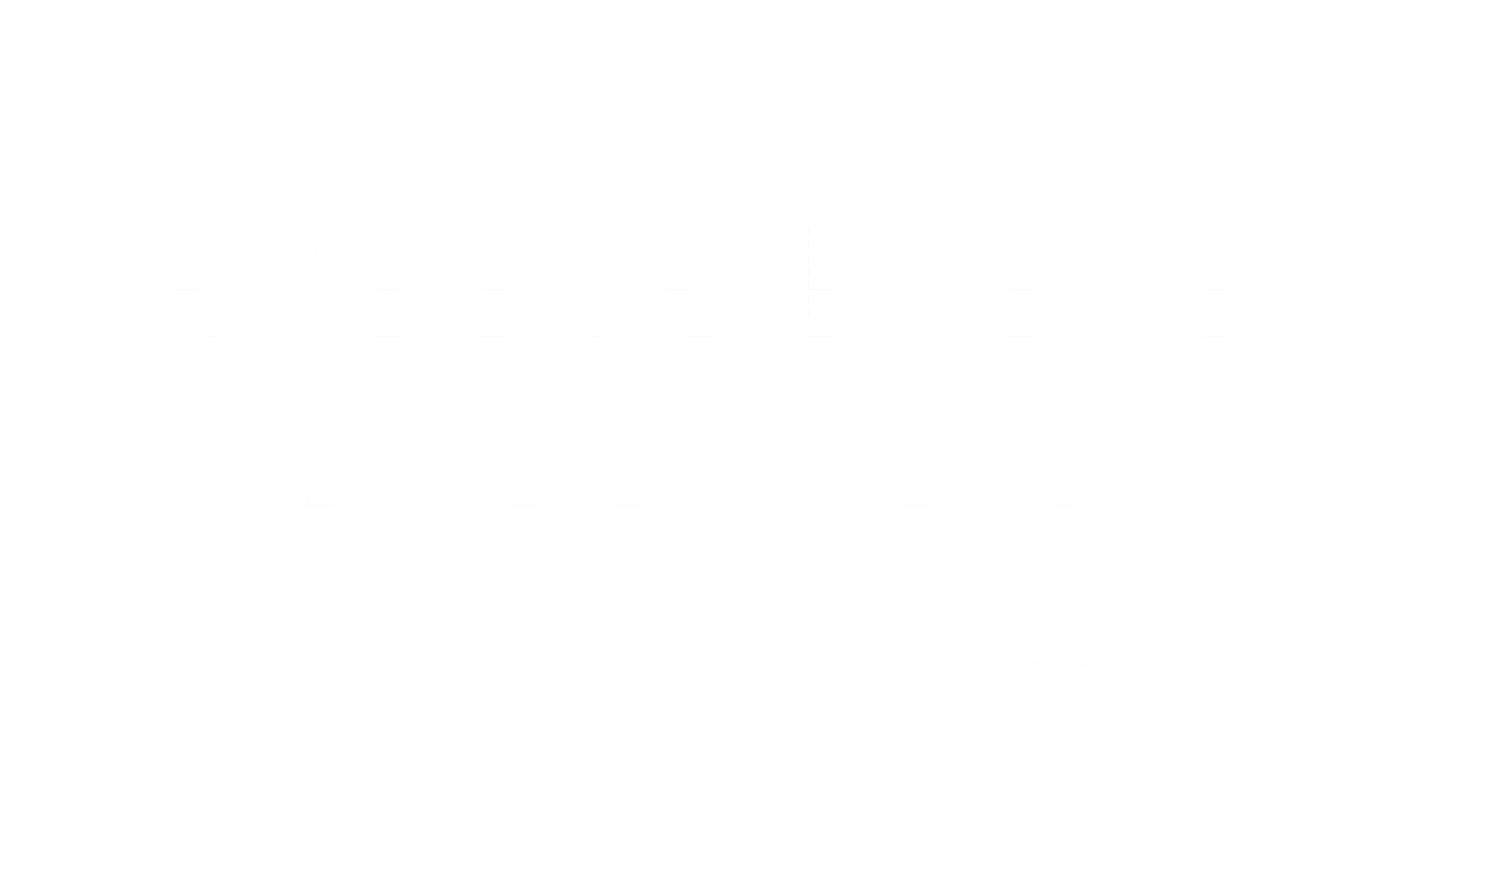 Chapel Cigar Club